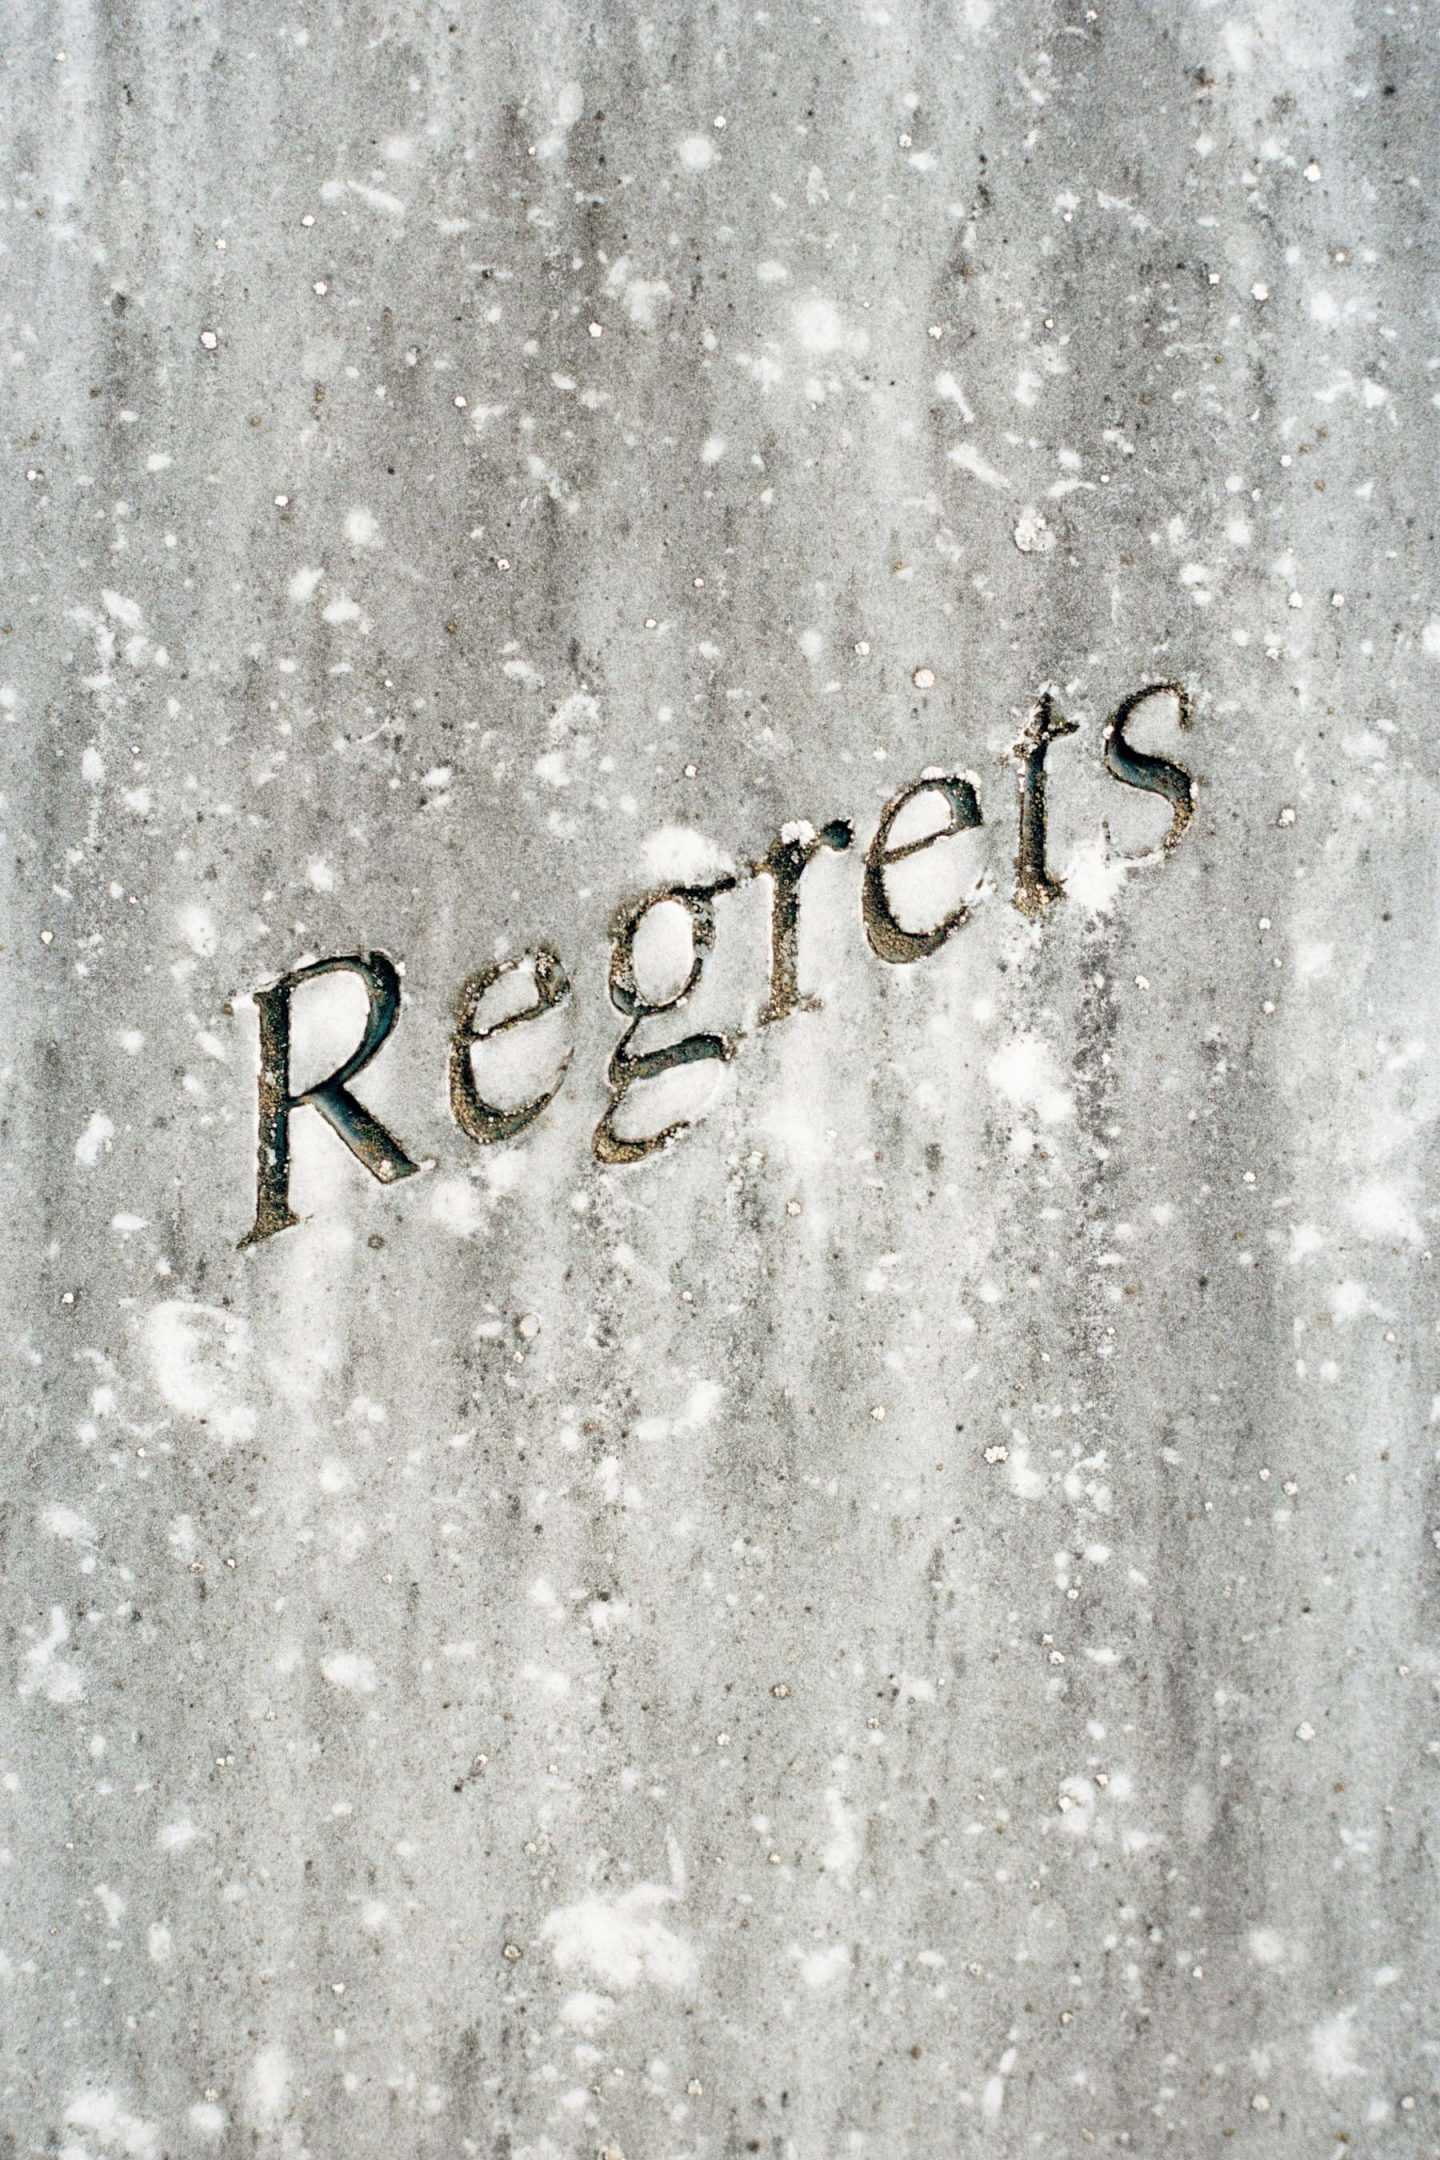 iGNANT-Photography-Stefano-Marchionini-Regrets-020